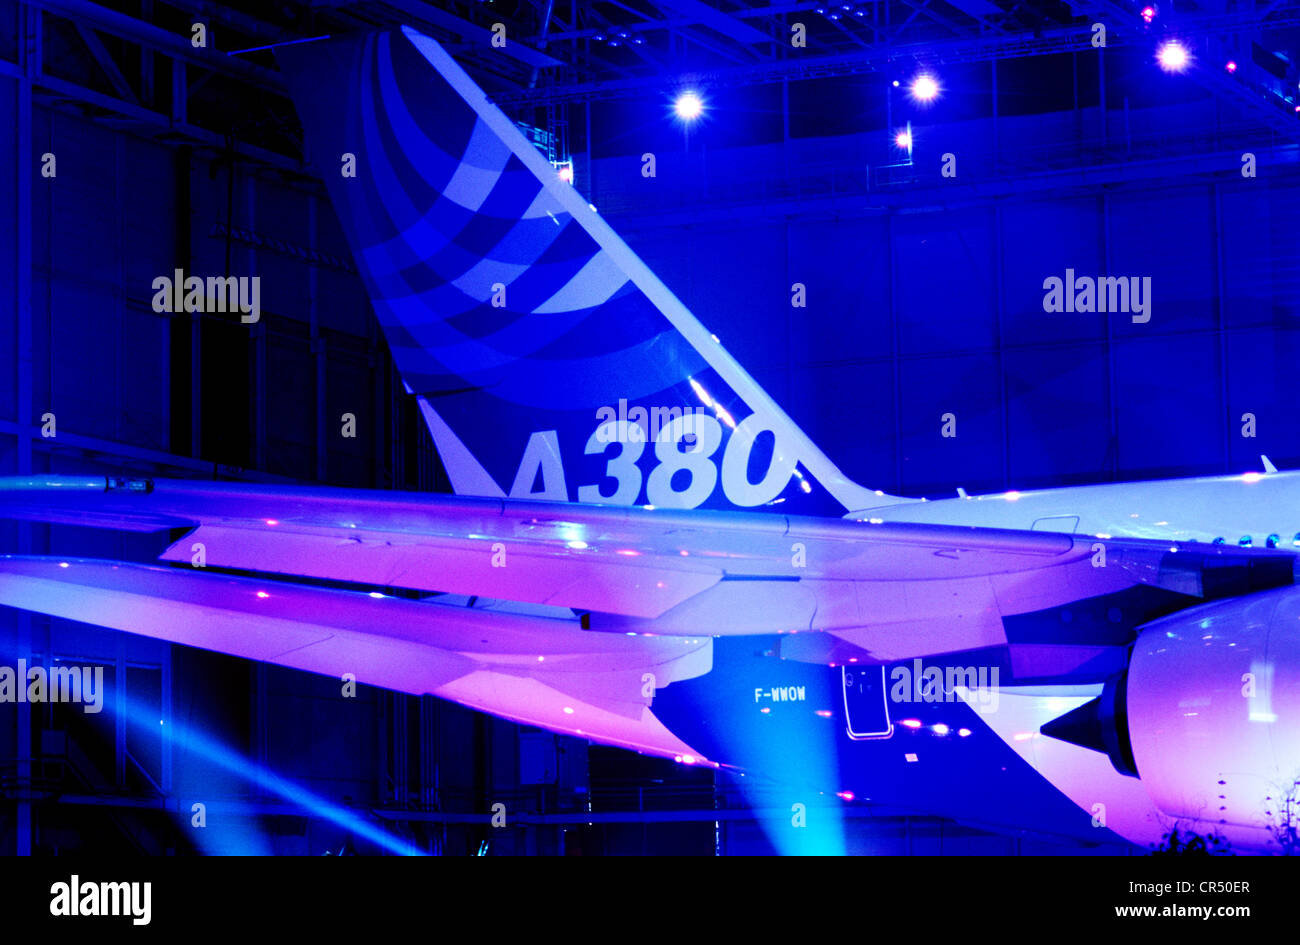 France, Haute Garonne, Blagnac, on january 2005 the 18th, Jean-Luc Lagardere firm, Airbus A380 unveiling - Stock Image